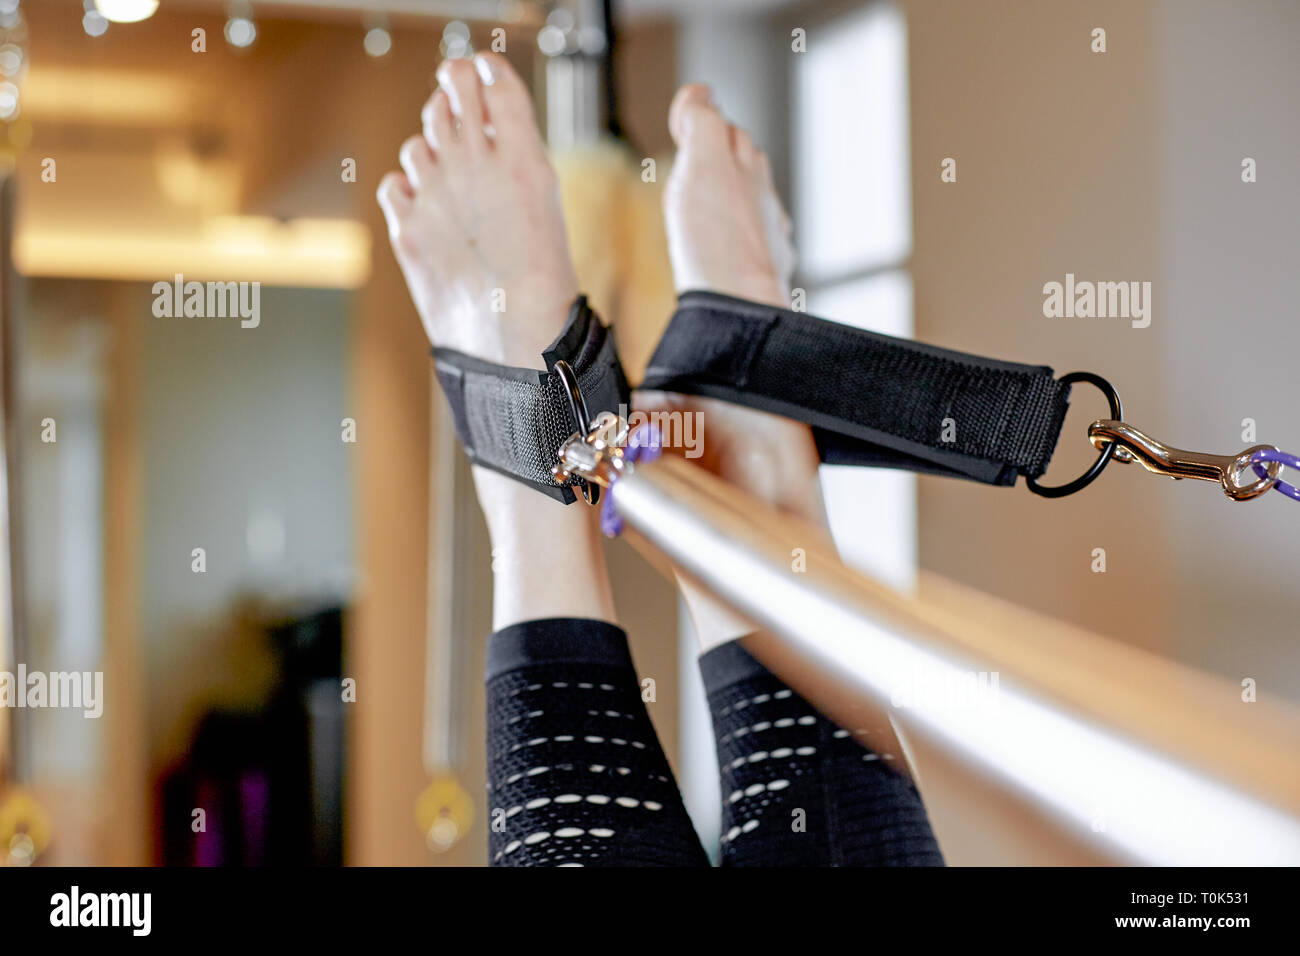 gym woman pilates stretching sport in reformer bed instructor girl. Legs close up - Stock Image